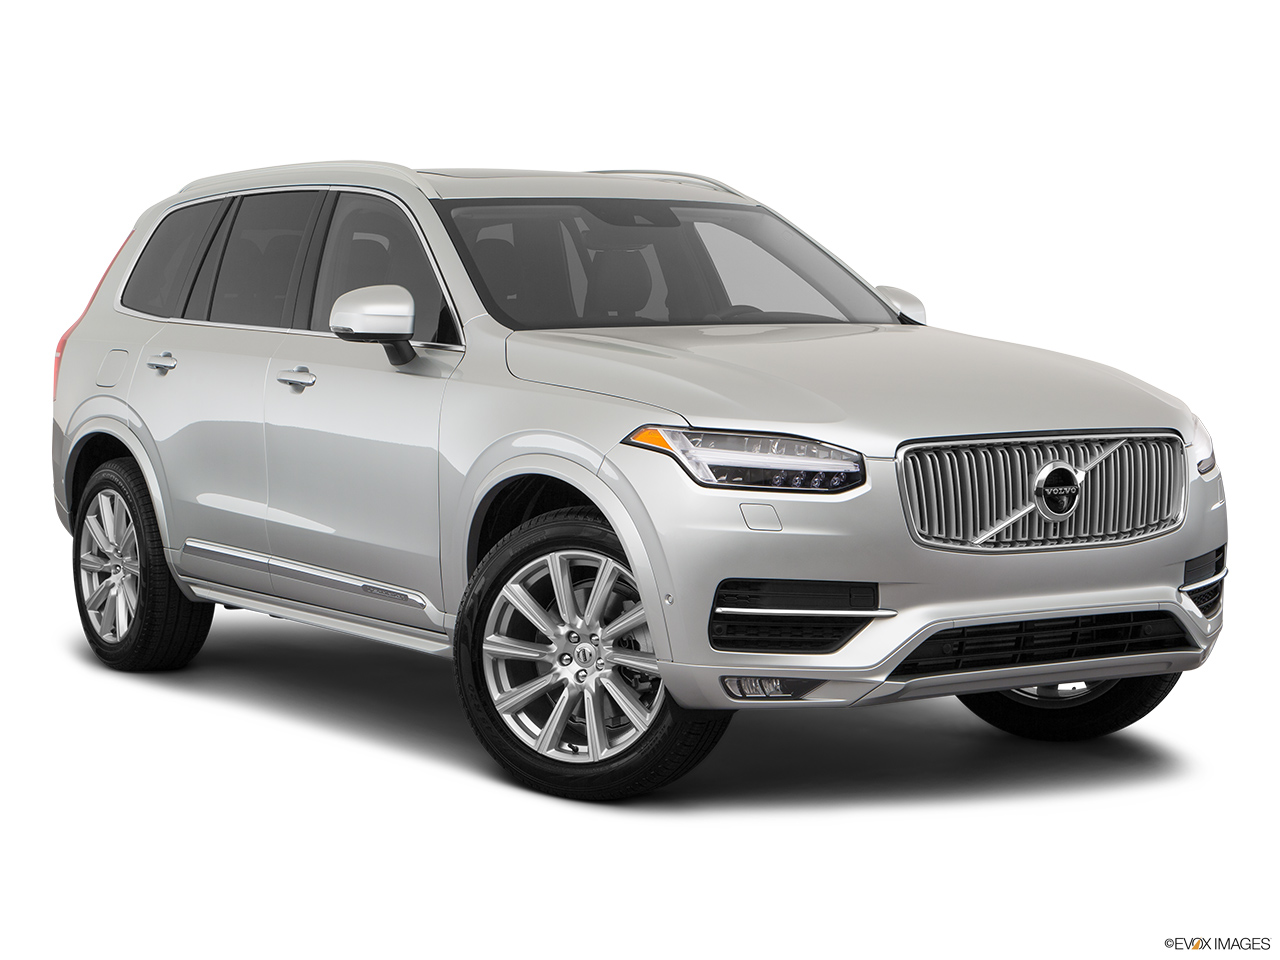 2019 Volvo XC90  T6 Inscription Front passenger 3/4 w/ wheels turned.